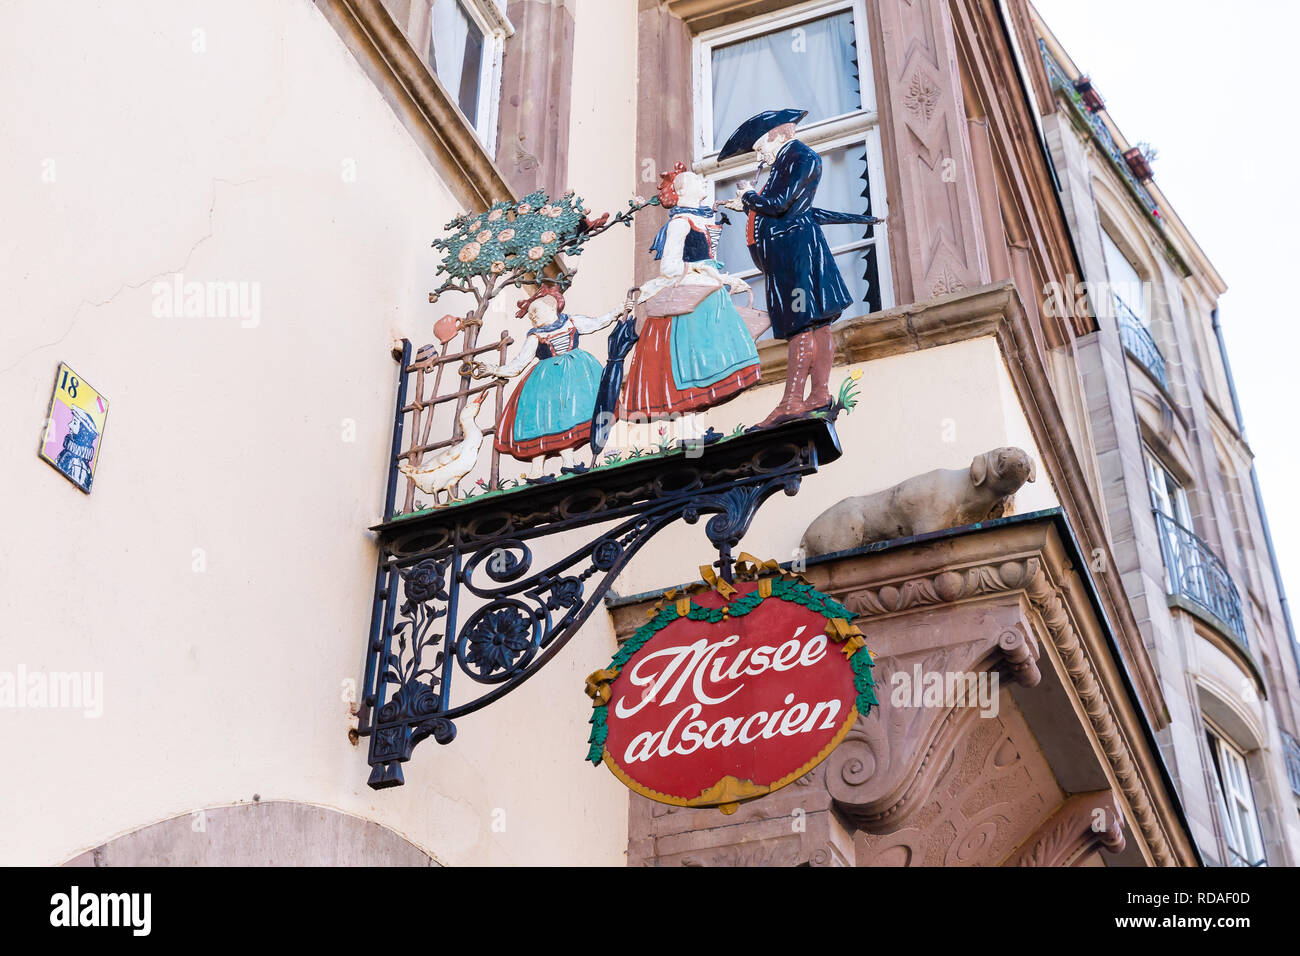 Strasbourg, France - September 09, 2018: signboard of an Alsatian museum in Strasbourg. Strasbourg is the capital and largest city of the Grand Est, t Stock Photo